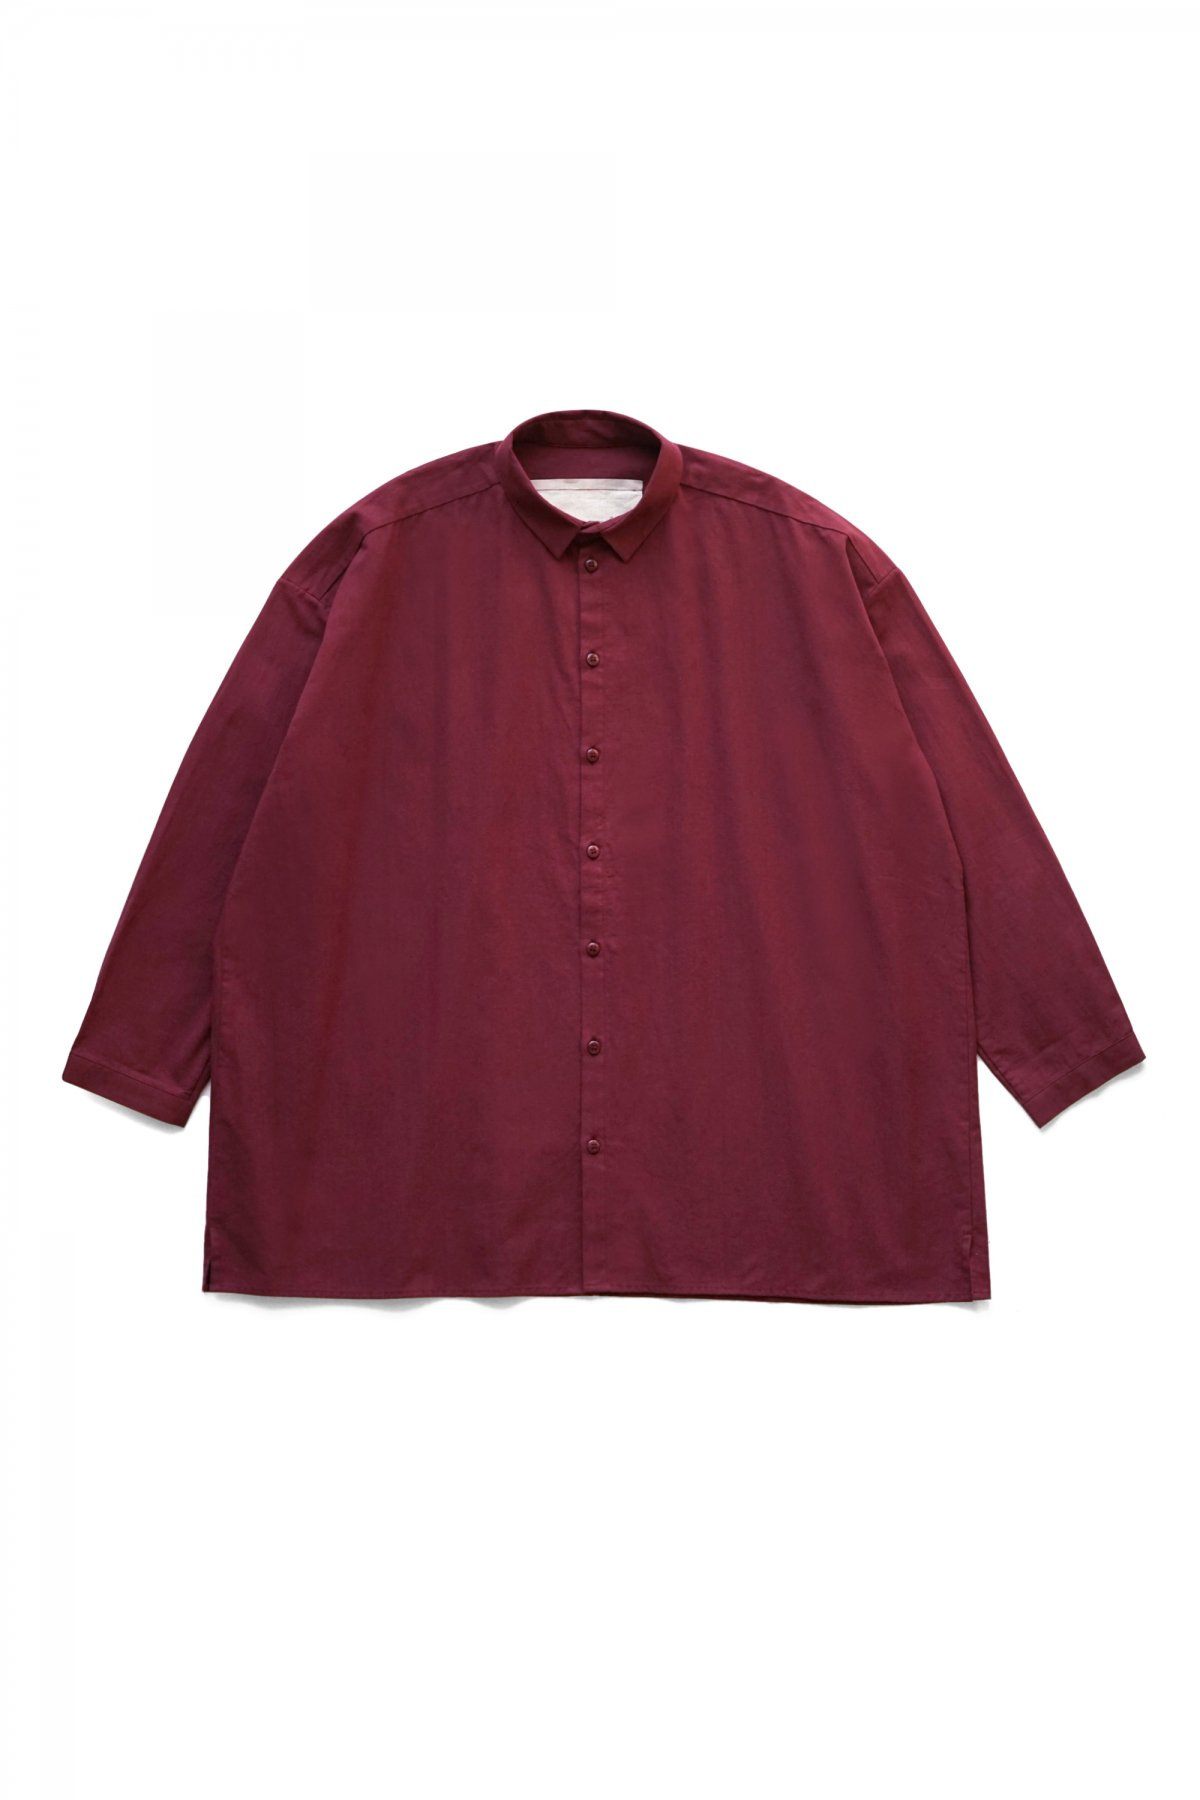 toogood - THE DRAUGHTSMAN SHIRT LONG - CALICO LW - MADDER